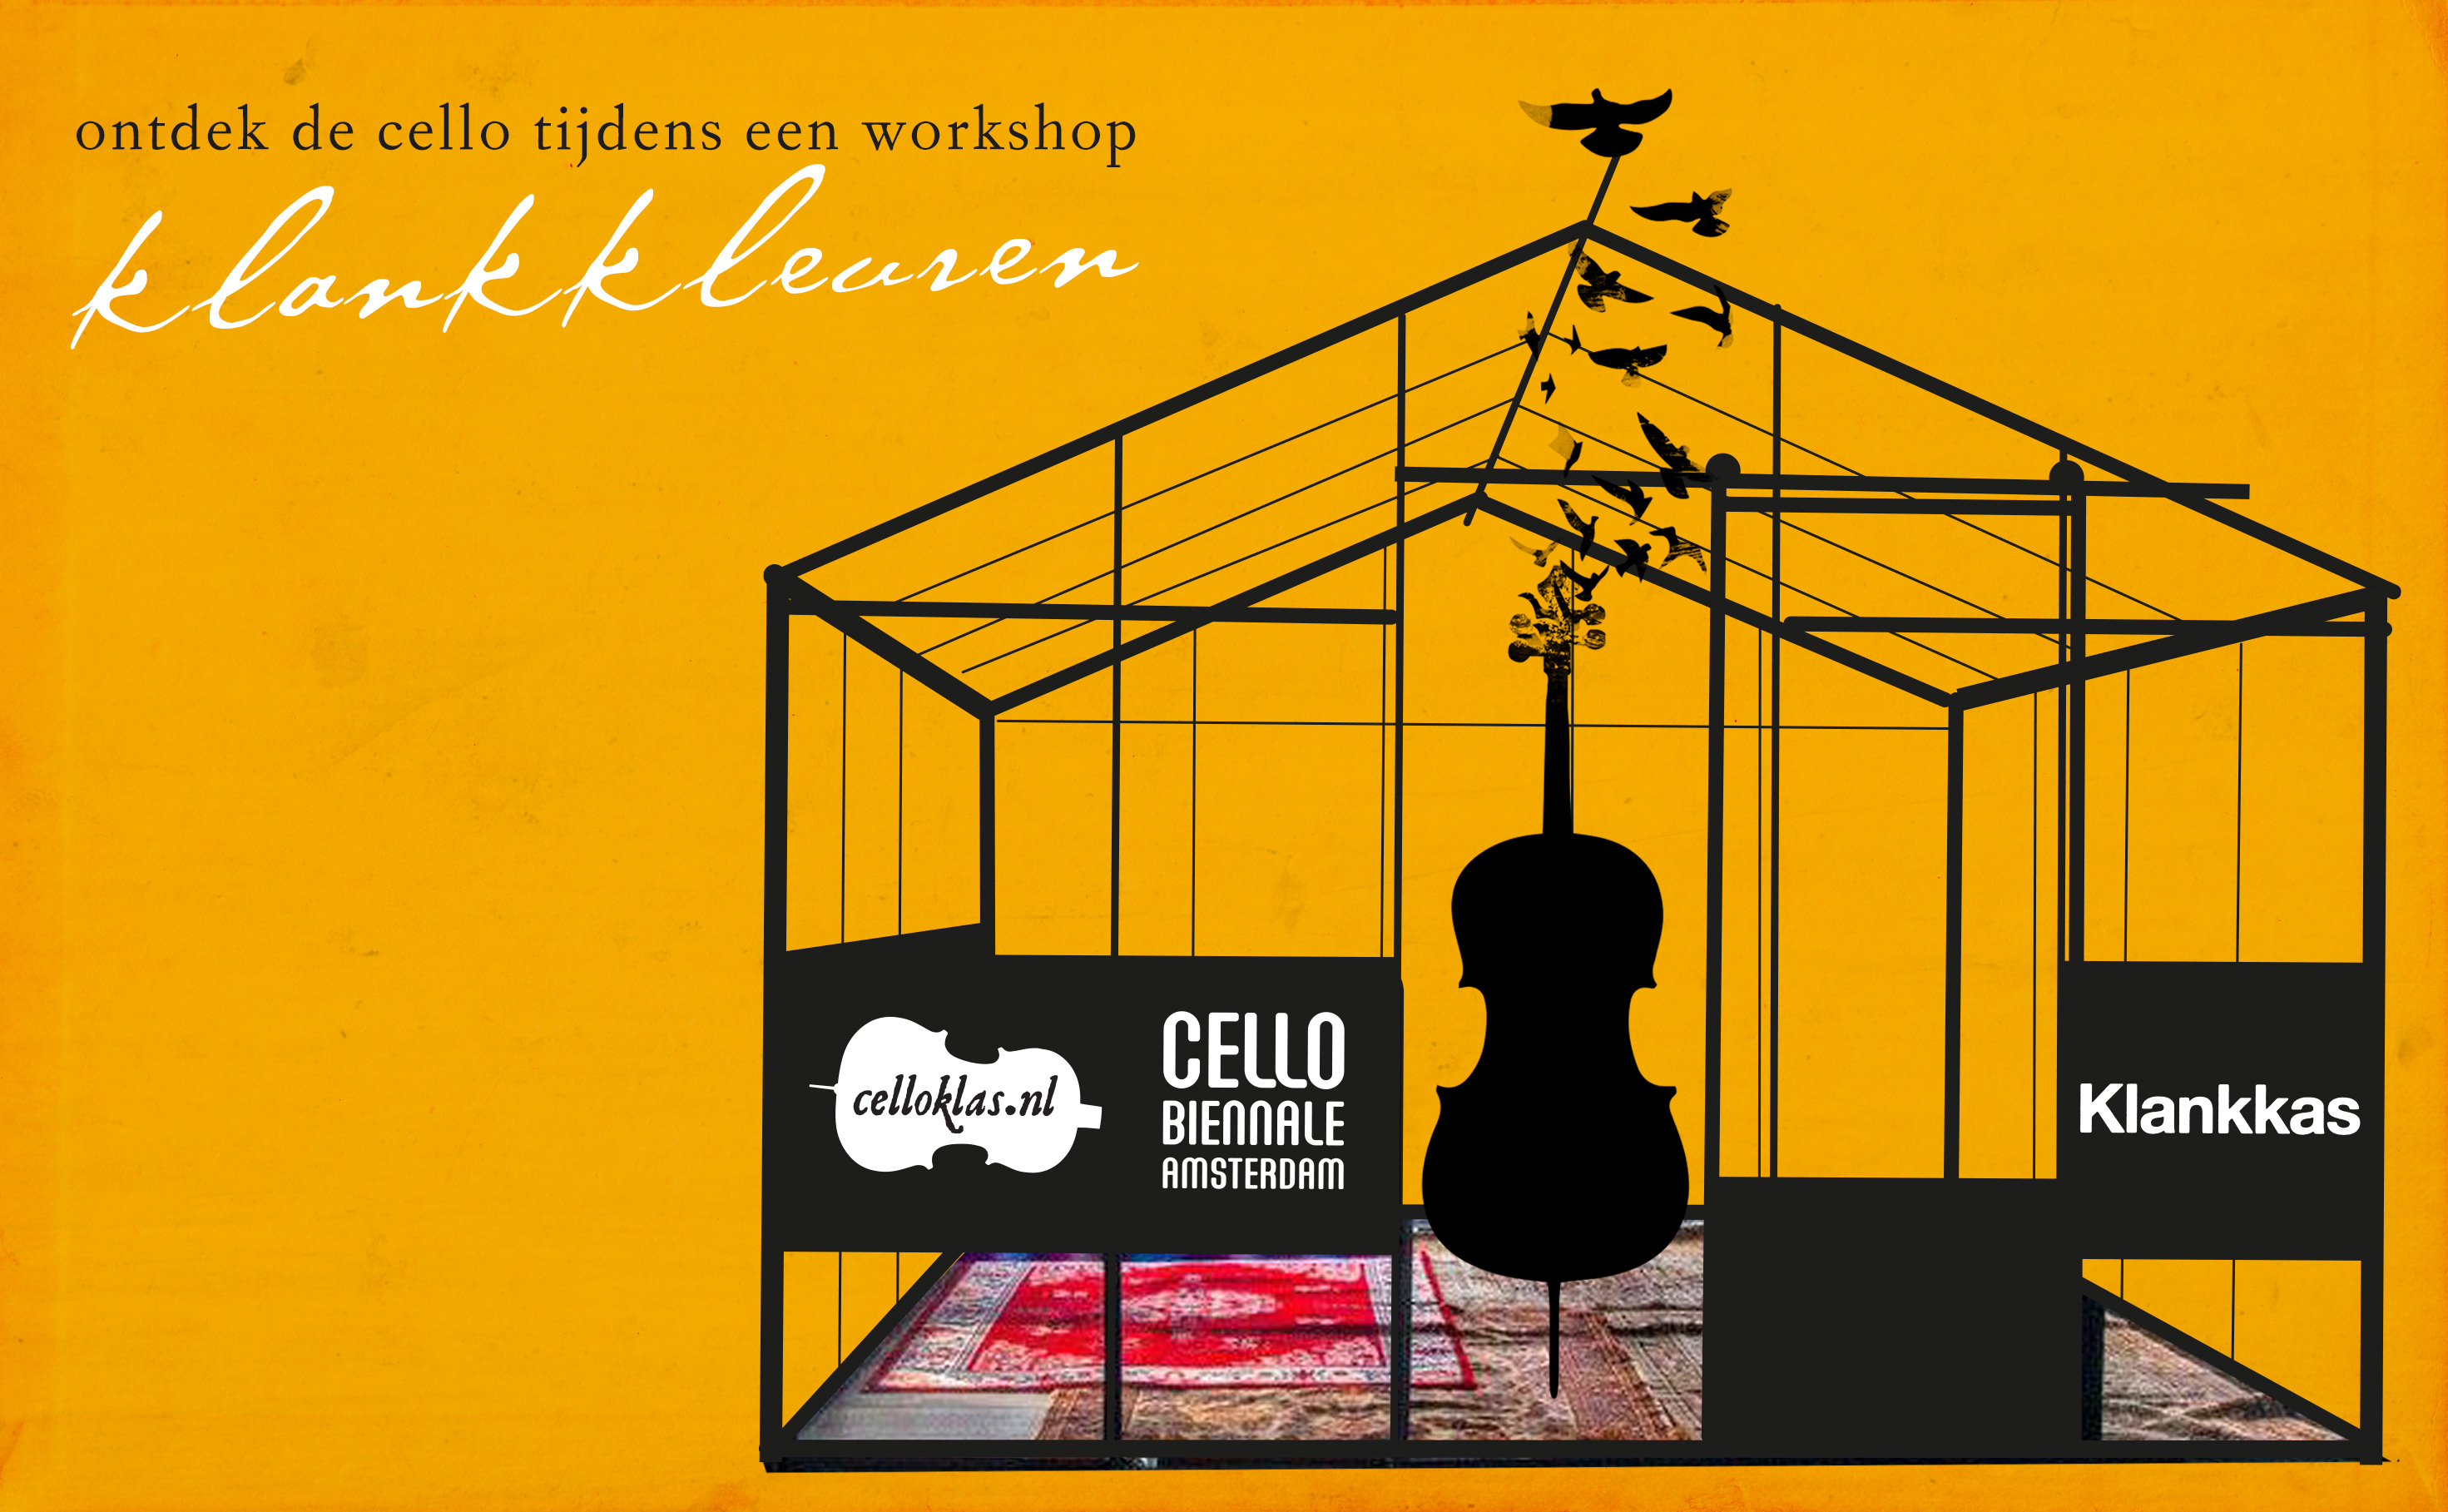 Workshop klankkleuren celloklas cello biënnale 2018 klankkas